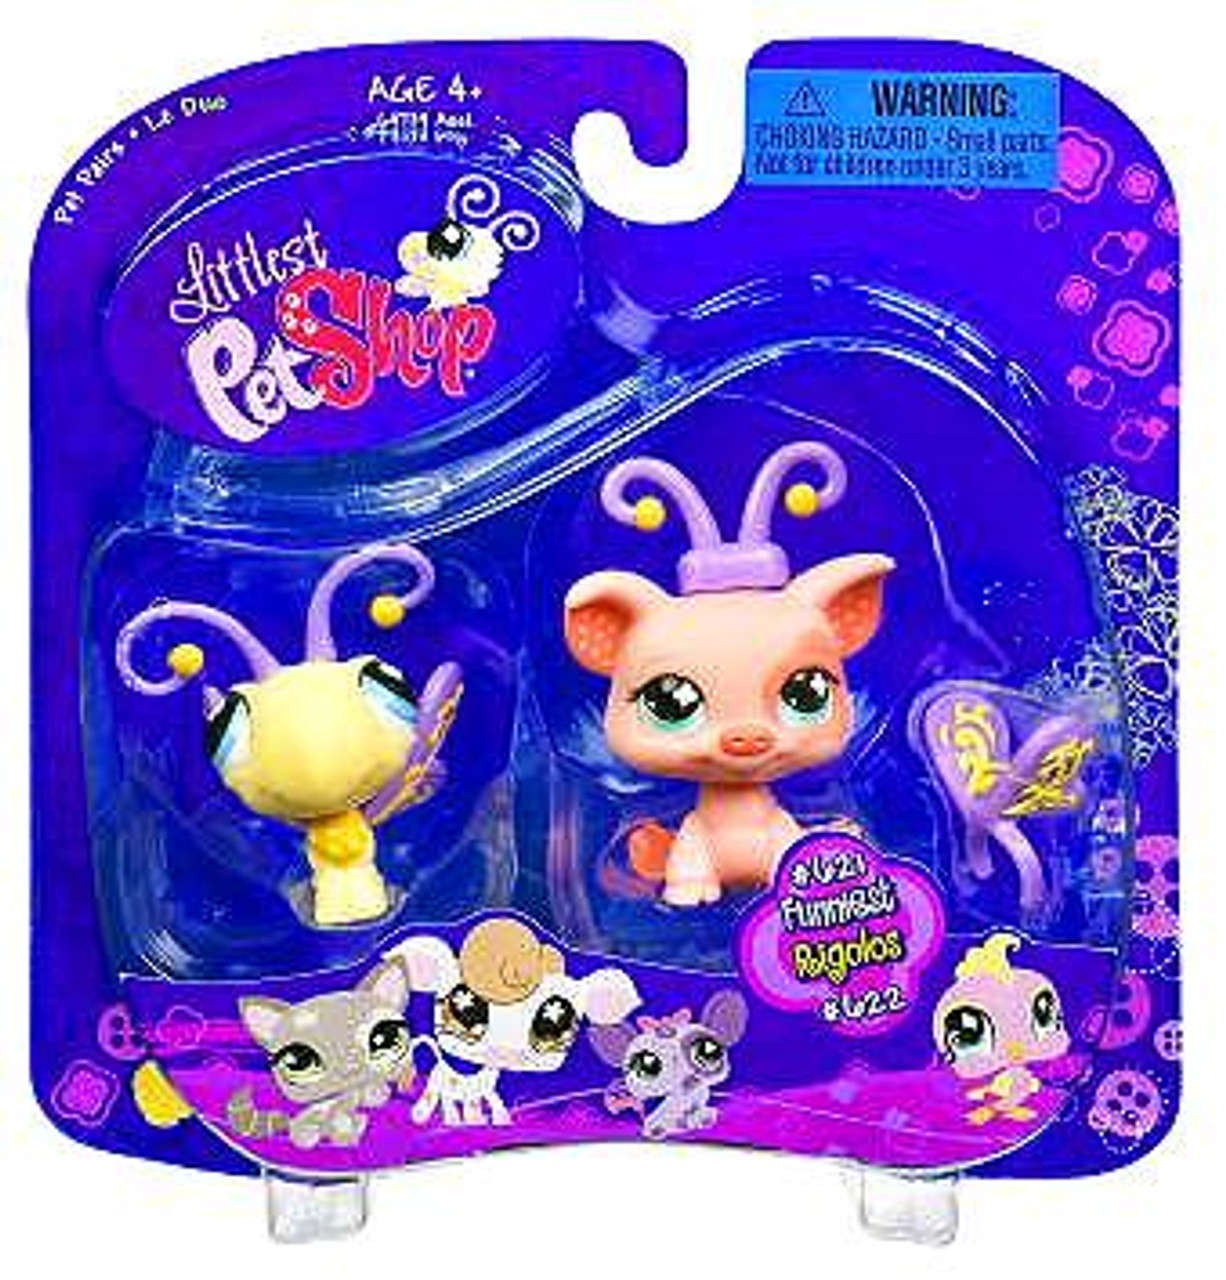 Littlest Pet Shop Pet Pairs Butterfly & Pig Figure 2-Pack #621, 622